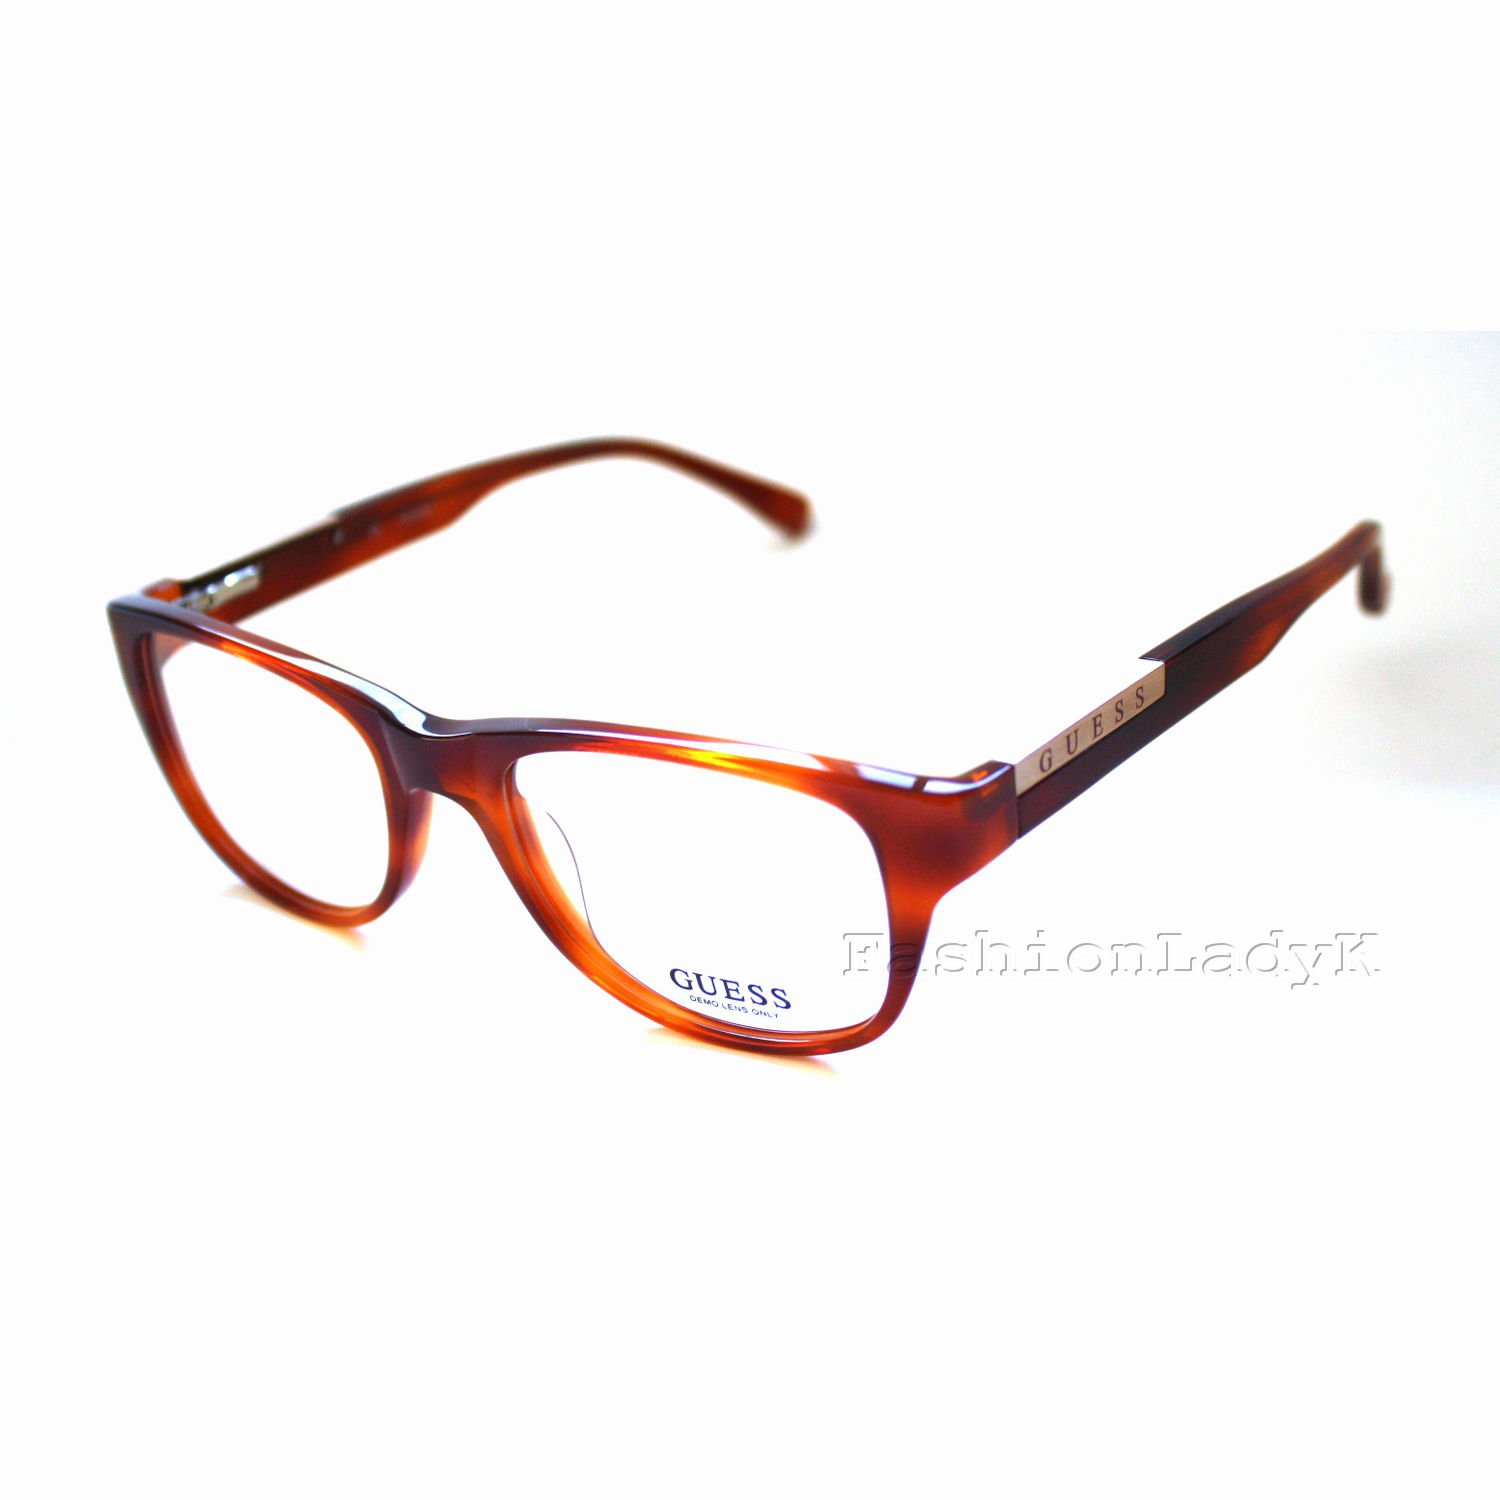 GUESS Brown Optical Eyeglasses Frame GU7137 HNY 50mm New w/ Case